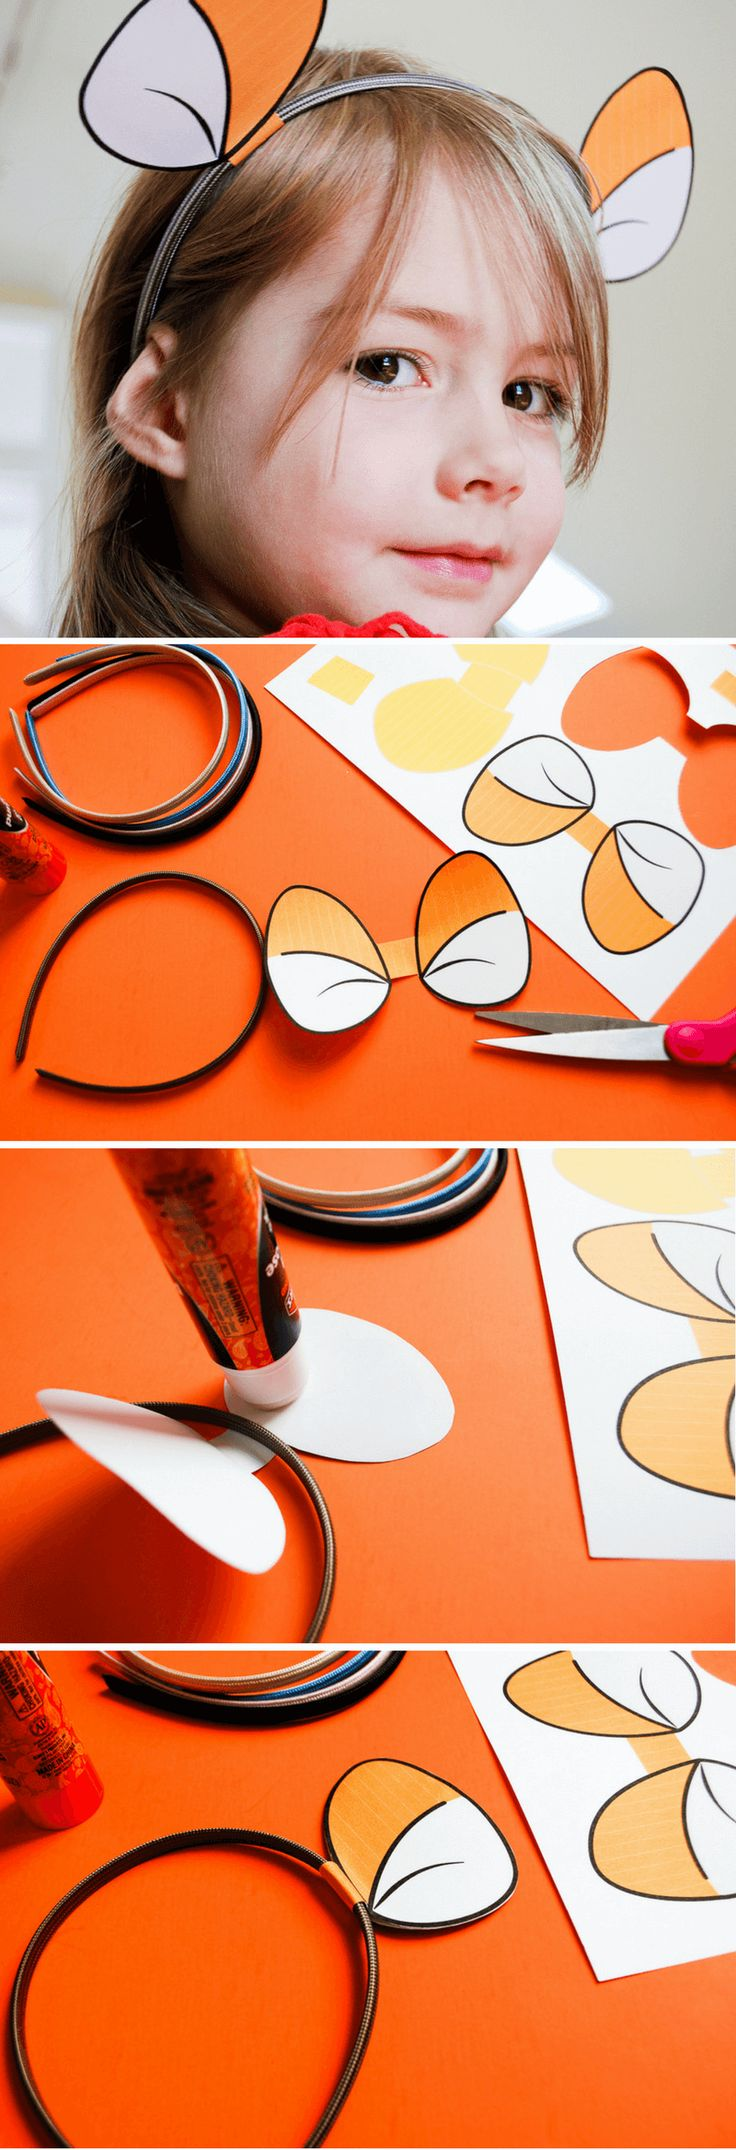 Make DIY Tigger headband using these free printable Tigger ears for your own Hundred Acre Woods celebration. #spon   Free printable Tigger ears | Free printable Winnie the Pooh ears | Free printable Piglet ears | easy Halloween costumes | Winnie The Pooh DIY costume | Piglet DIY costume | Tigger DIY costume